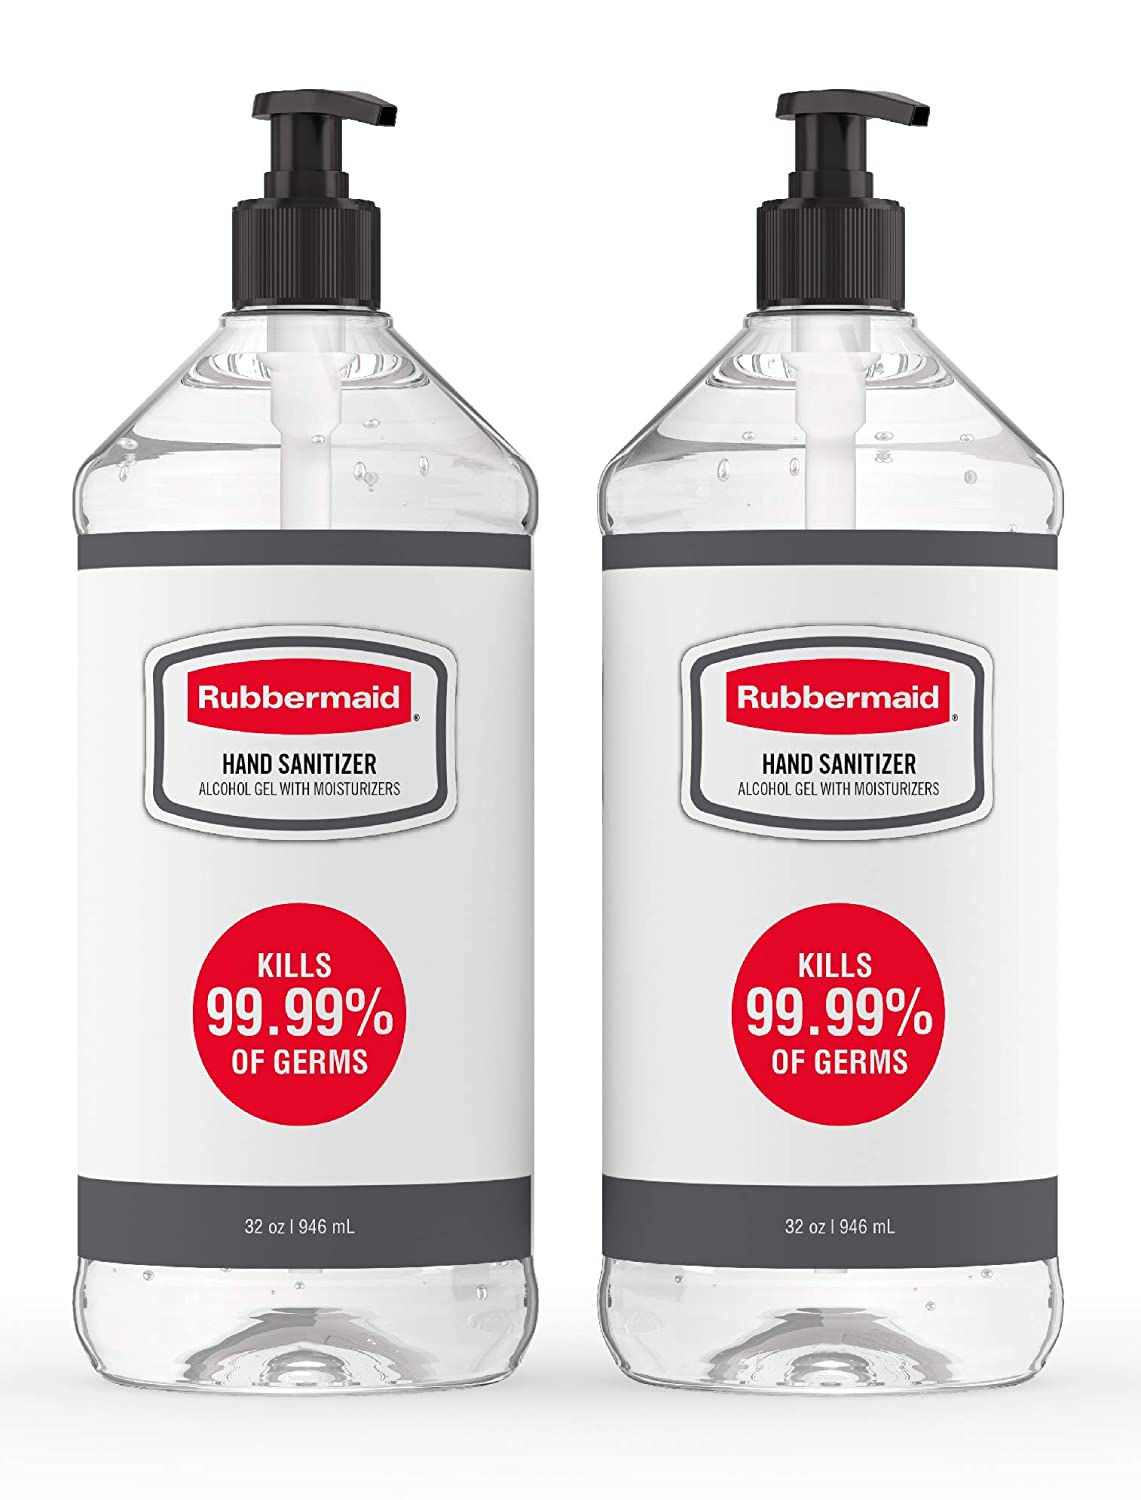 Max 84% OFF Rubbermaid security Gel Hand Sanitizer Alcohol-Based of 2 Bottles Pack